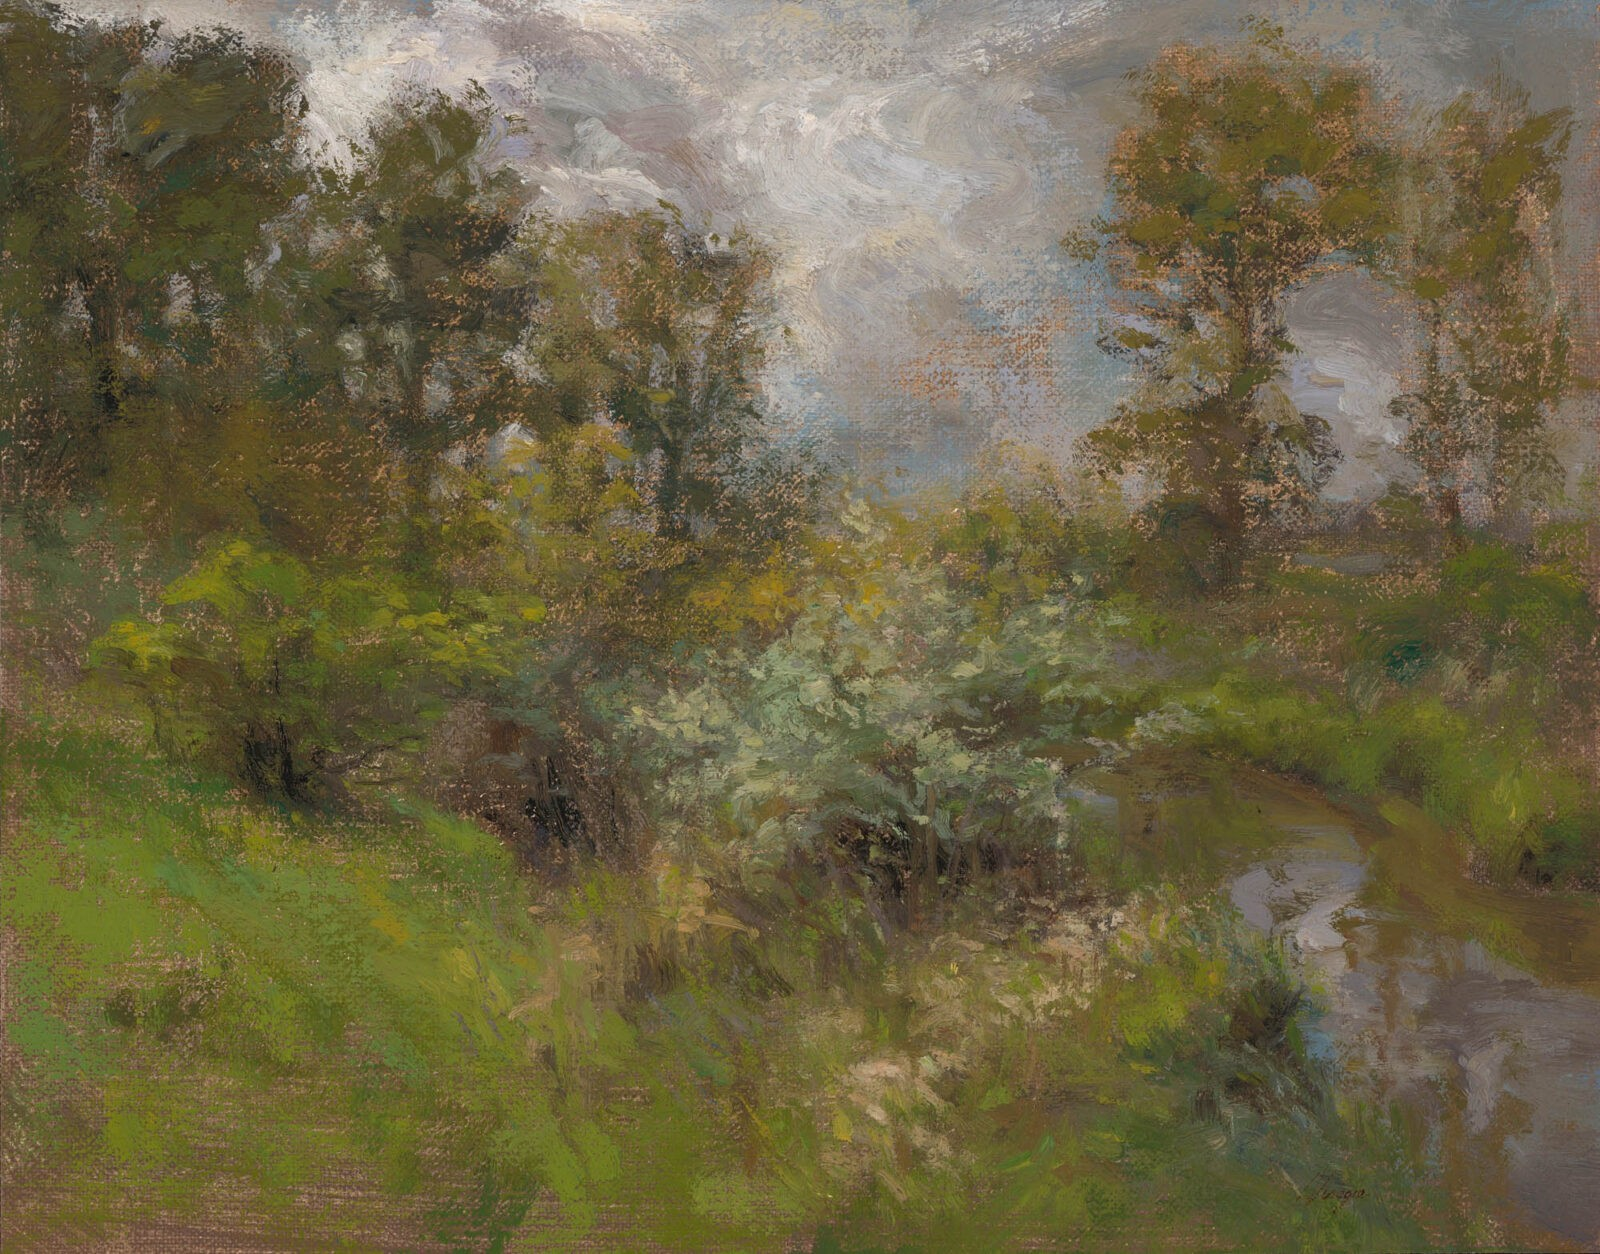 Liza Visagie - Early Spring. Oil on Linen 10 x 13.5 inches